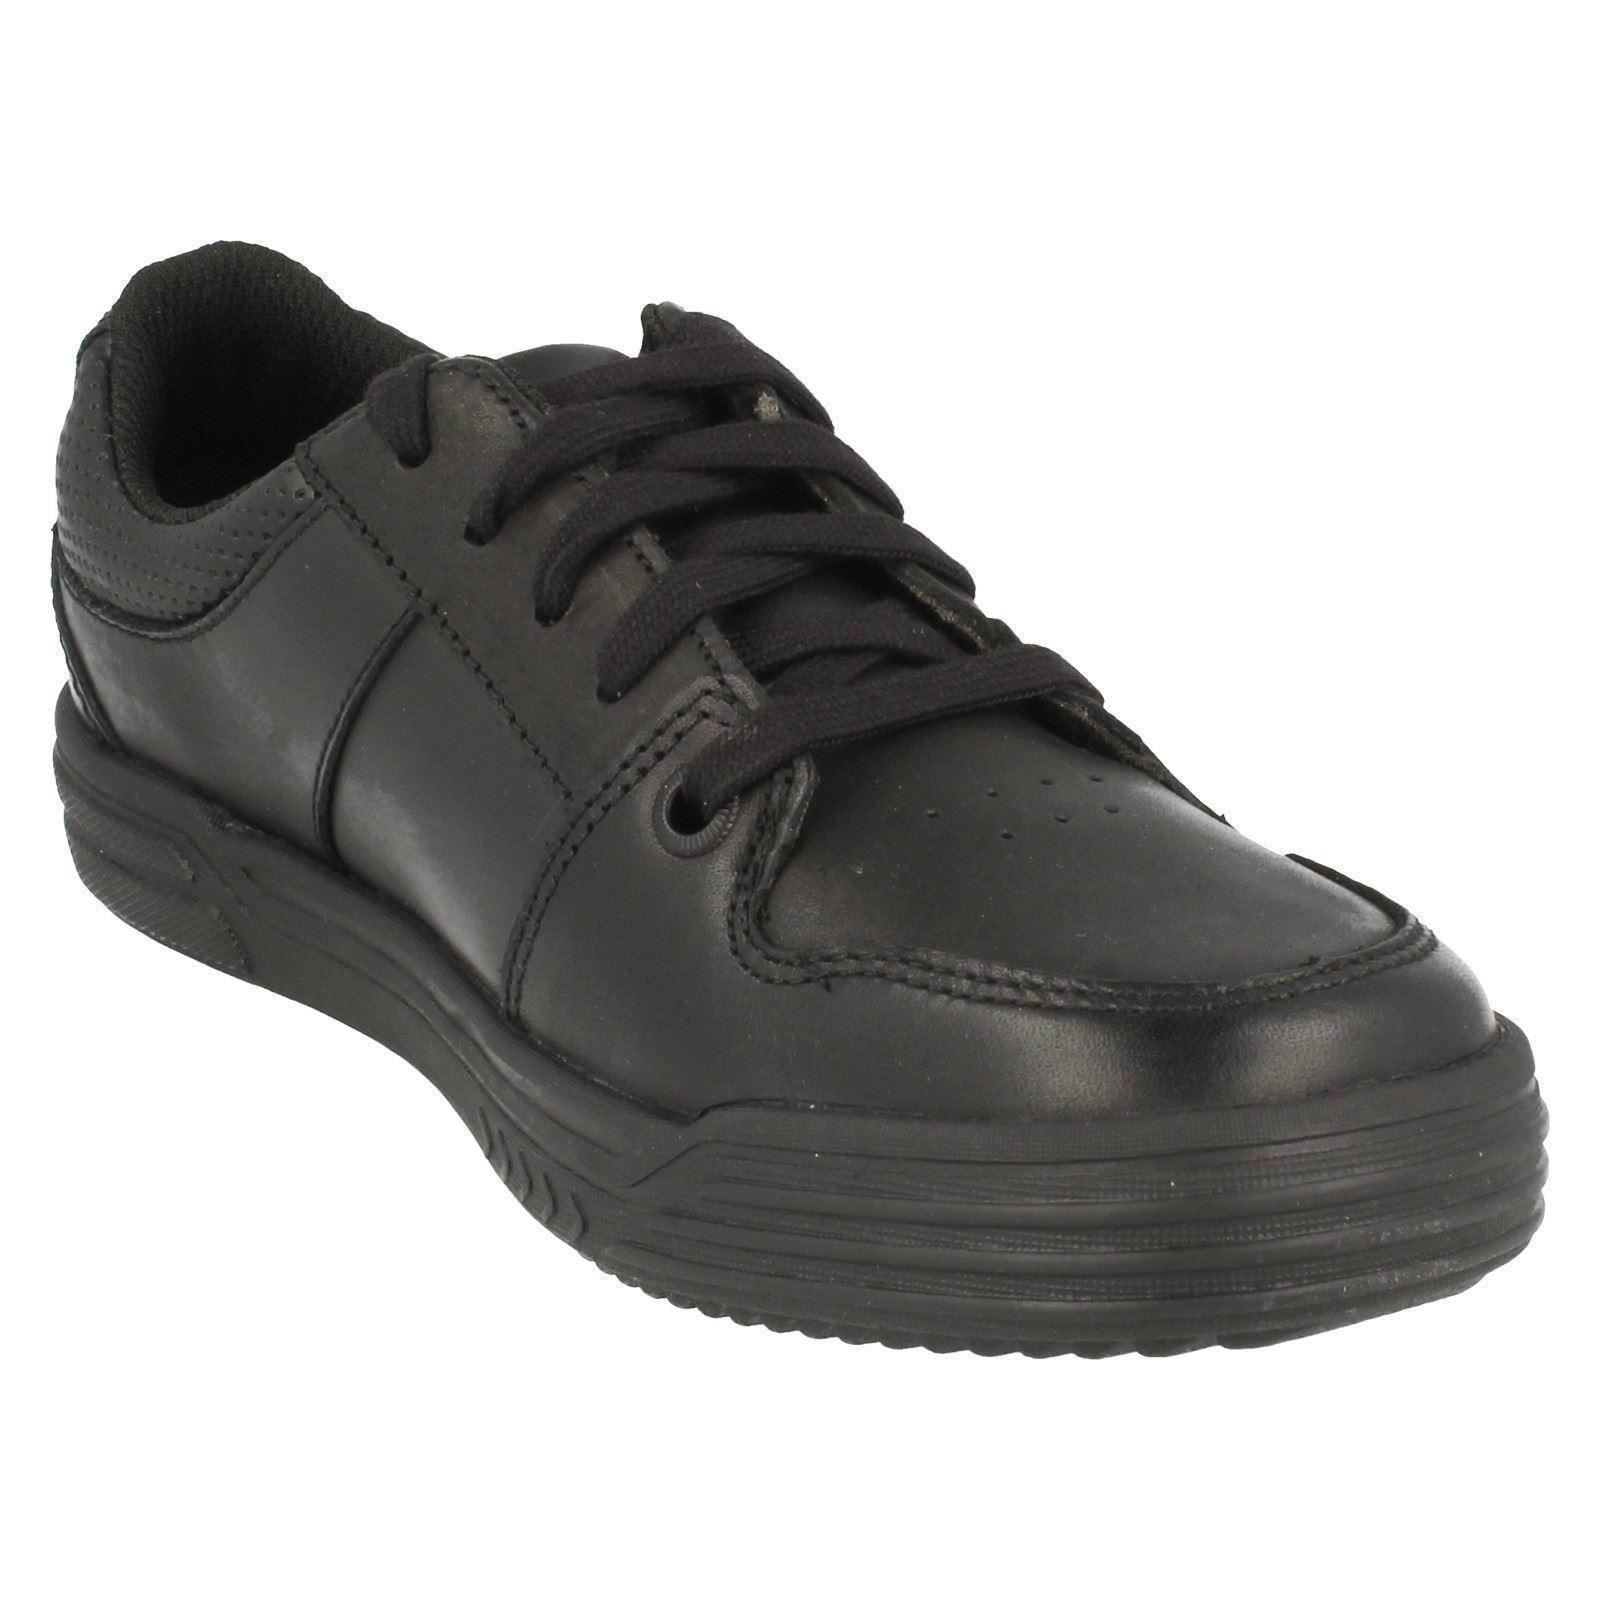 H Clarks Boy School Shoes